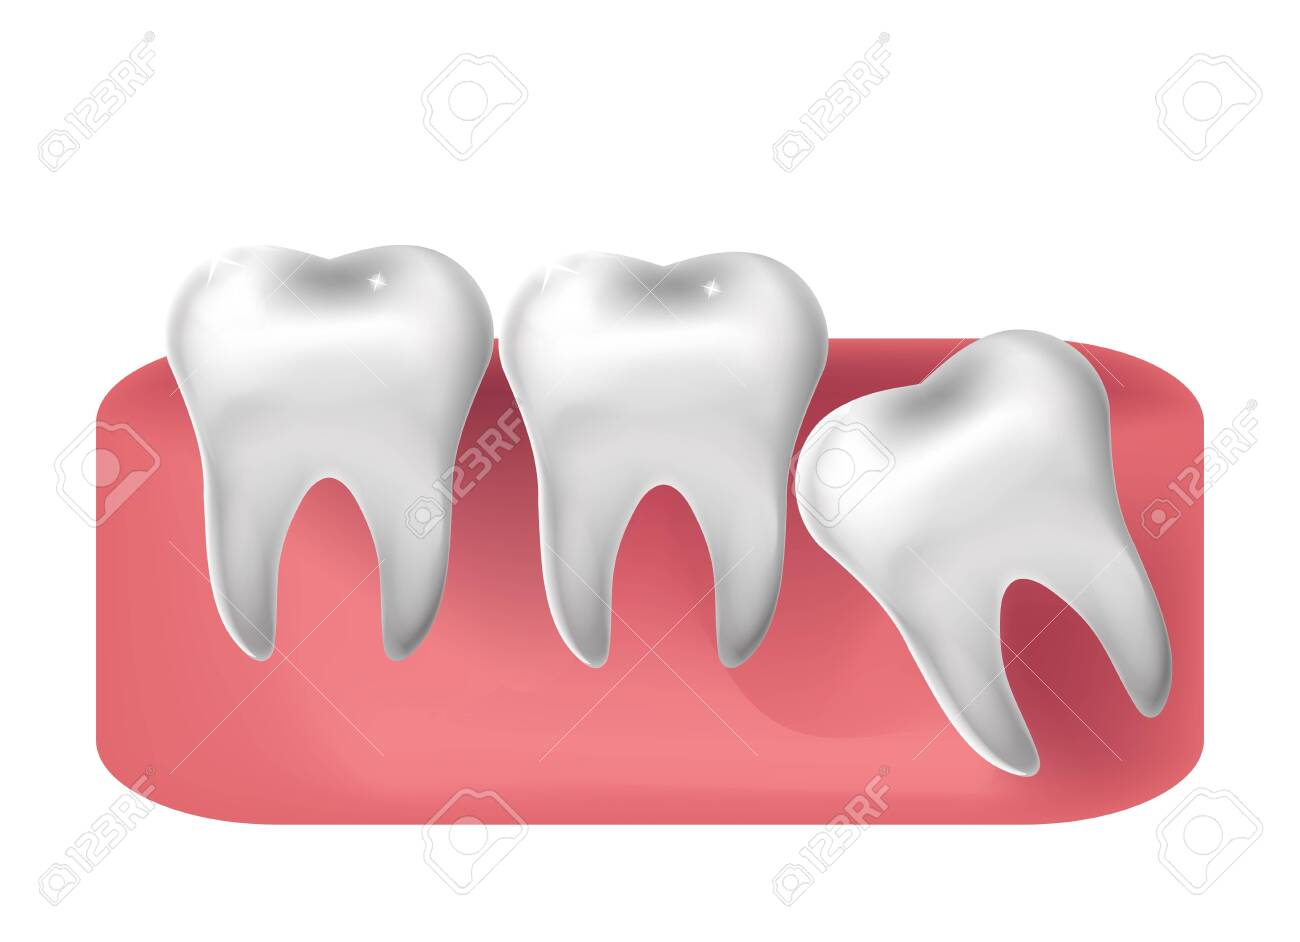 Wisdom tooth cut through, 3d realistic style. Dentistry, wisdom teeth extraction concept. Vector illustration. - 149023717